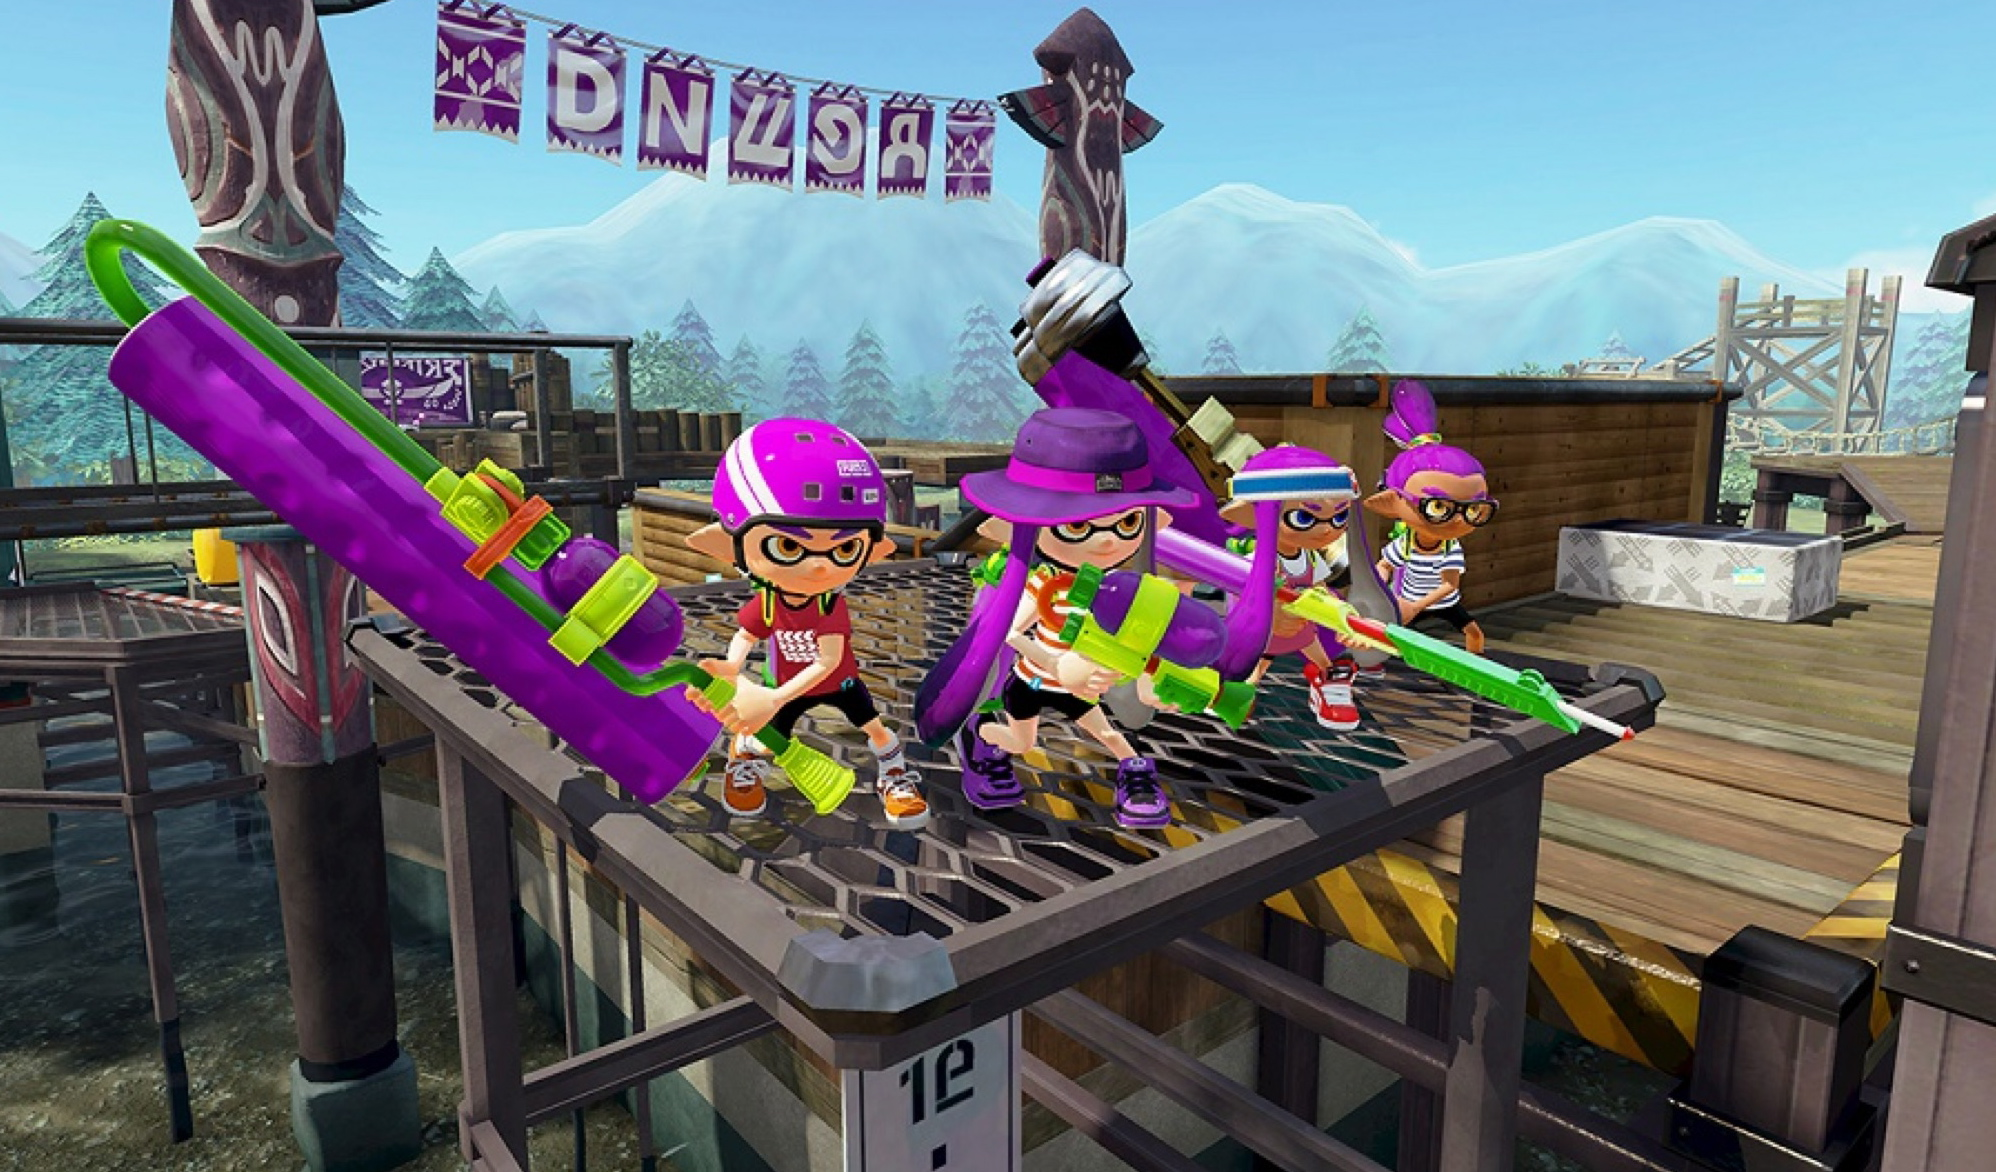 Getting Inked In Nintendo's New Splatoon